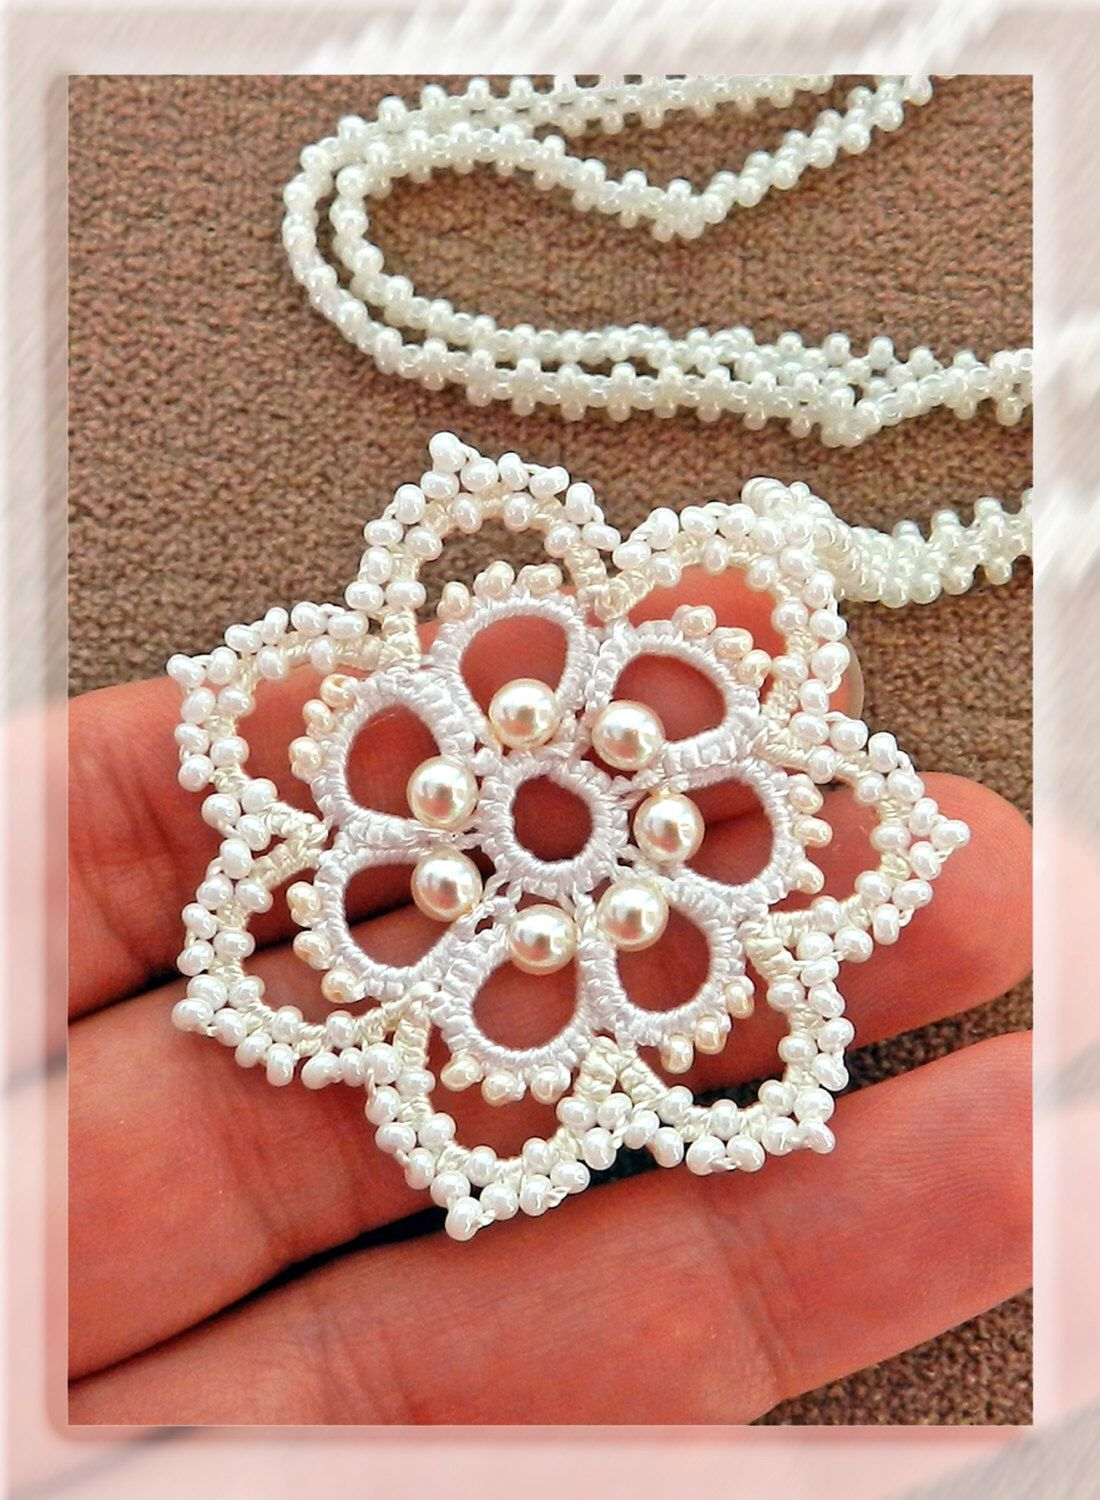 Tatted milky pendant with beads - Tatted jewelry - Round pendant - Bridal jewelry - Wedding jewelry - Lace jewelry by LacyLoveJewelry on Etsy https://www.etsy.com/listing/207716131/tatted-milky-pendant-with-beads-tatted